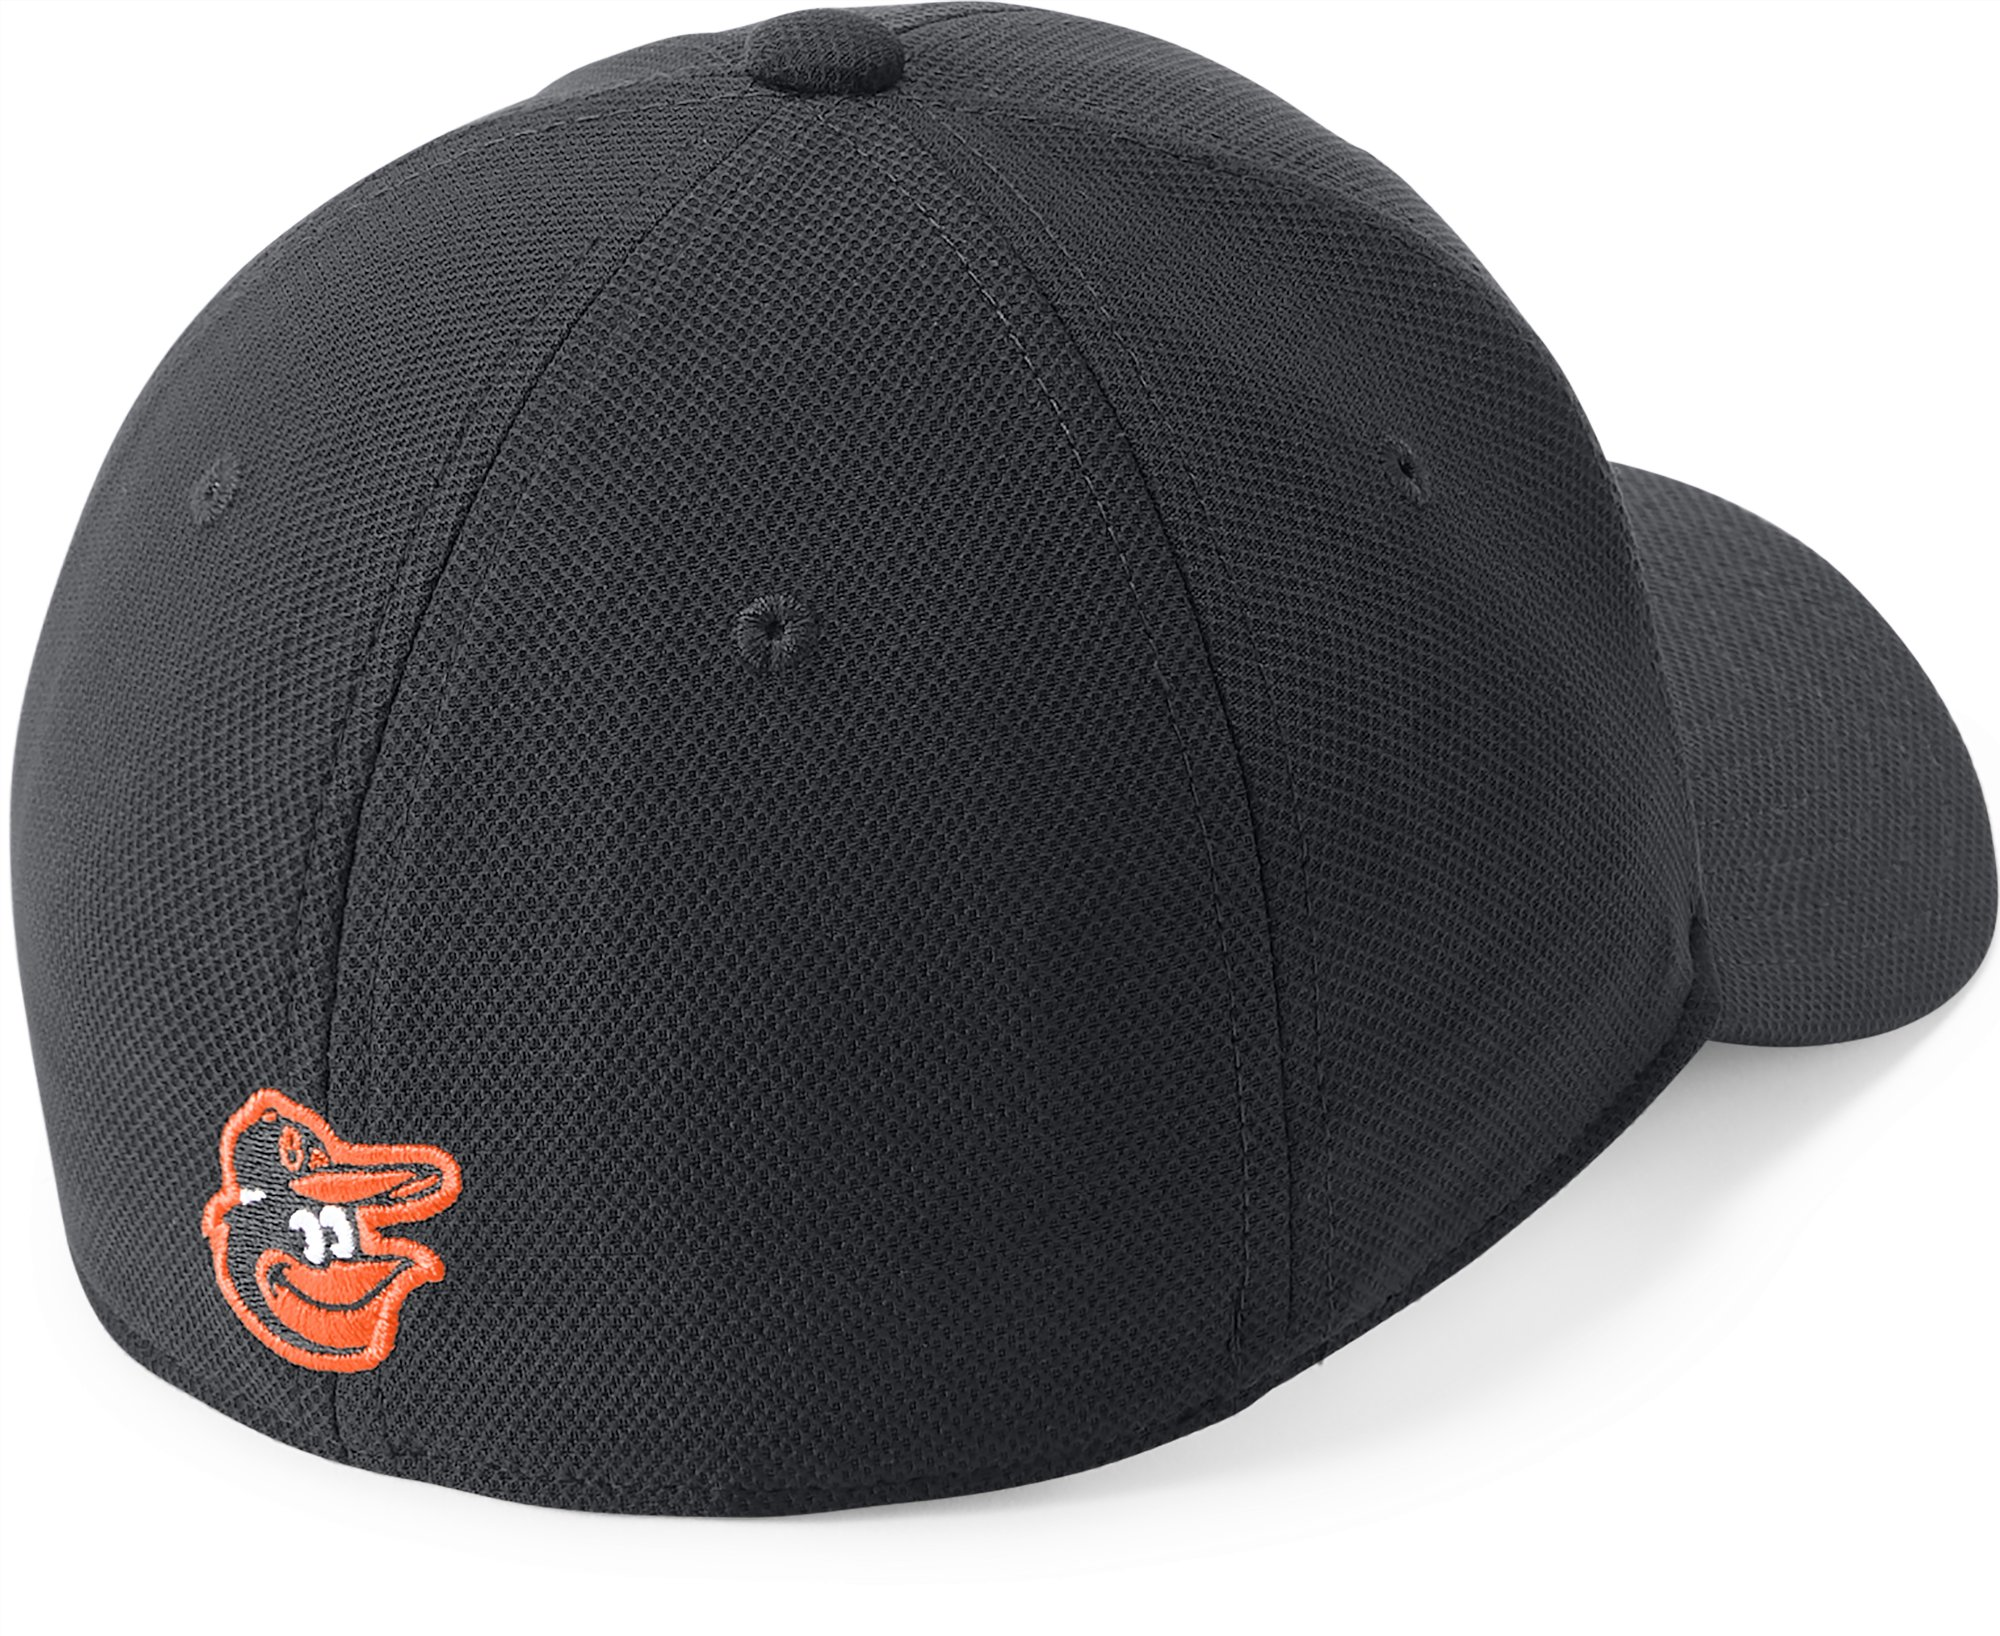 Boy's MLB Blitzing 3.0 Stretch Fit Cap, Black ,